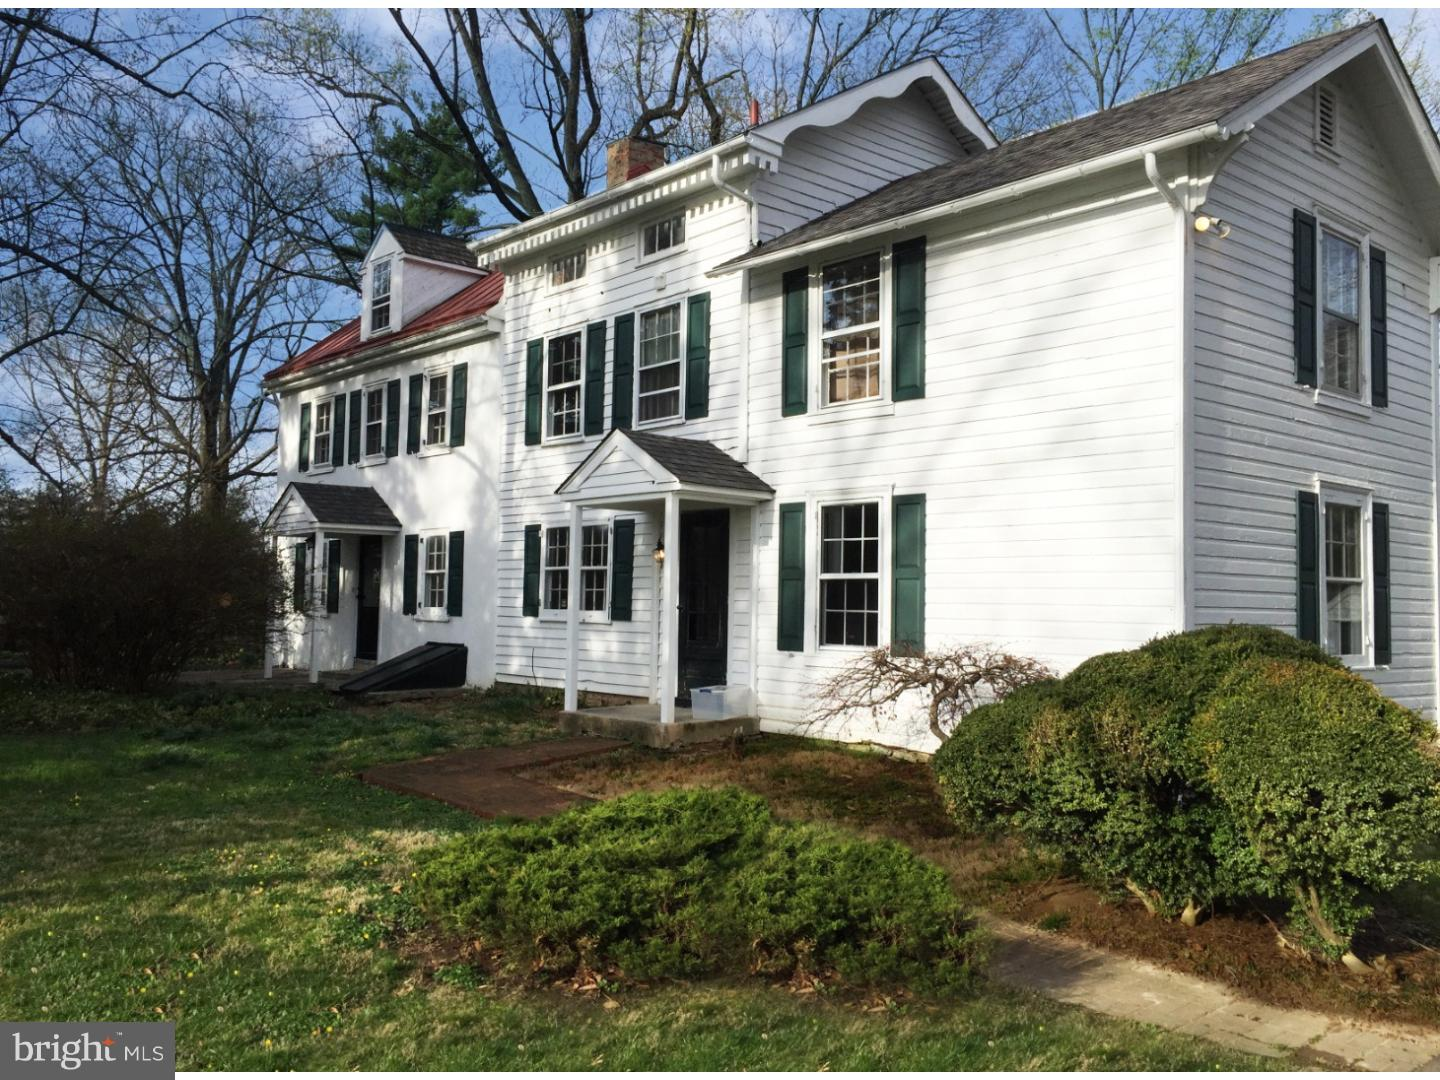 3037 SPRING MILL ROAD, PLYMOUTH MEETING, PA 19462